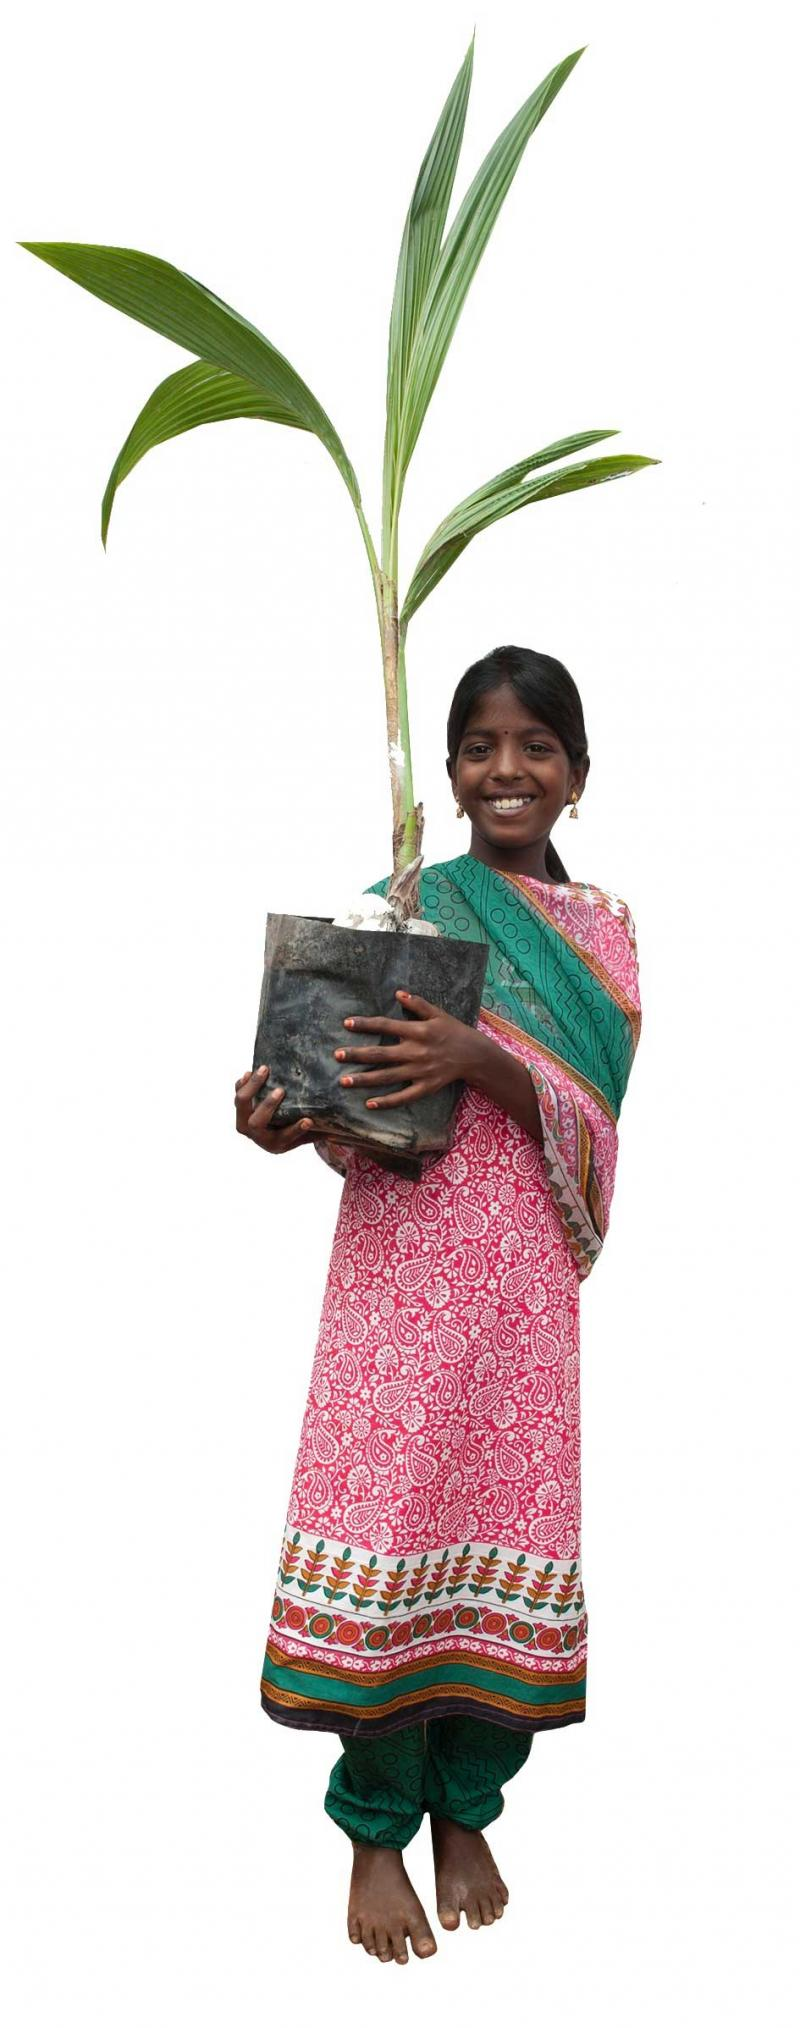 Girl holding coconut plant